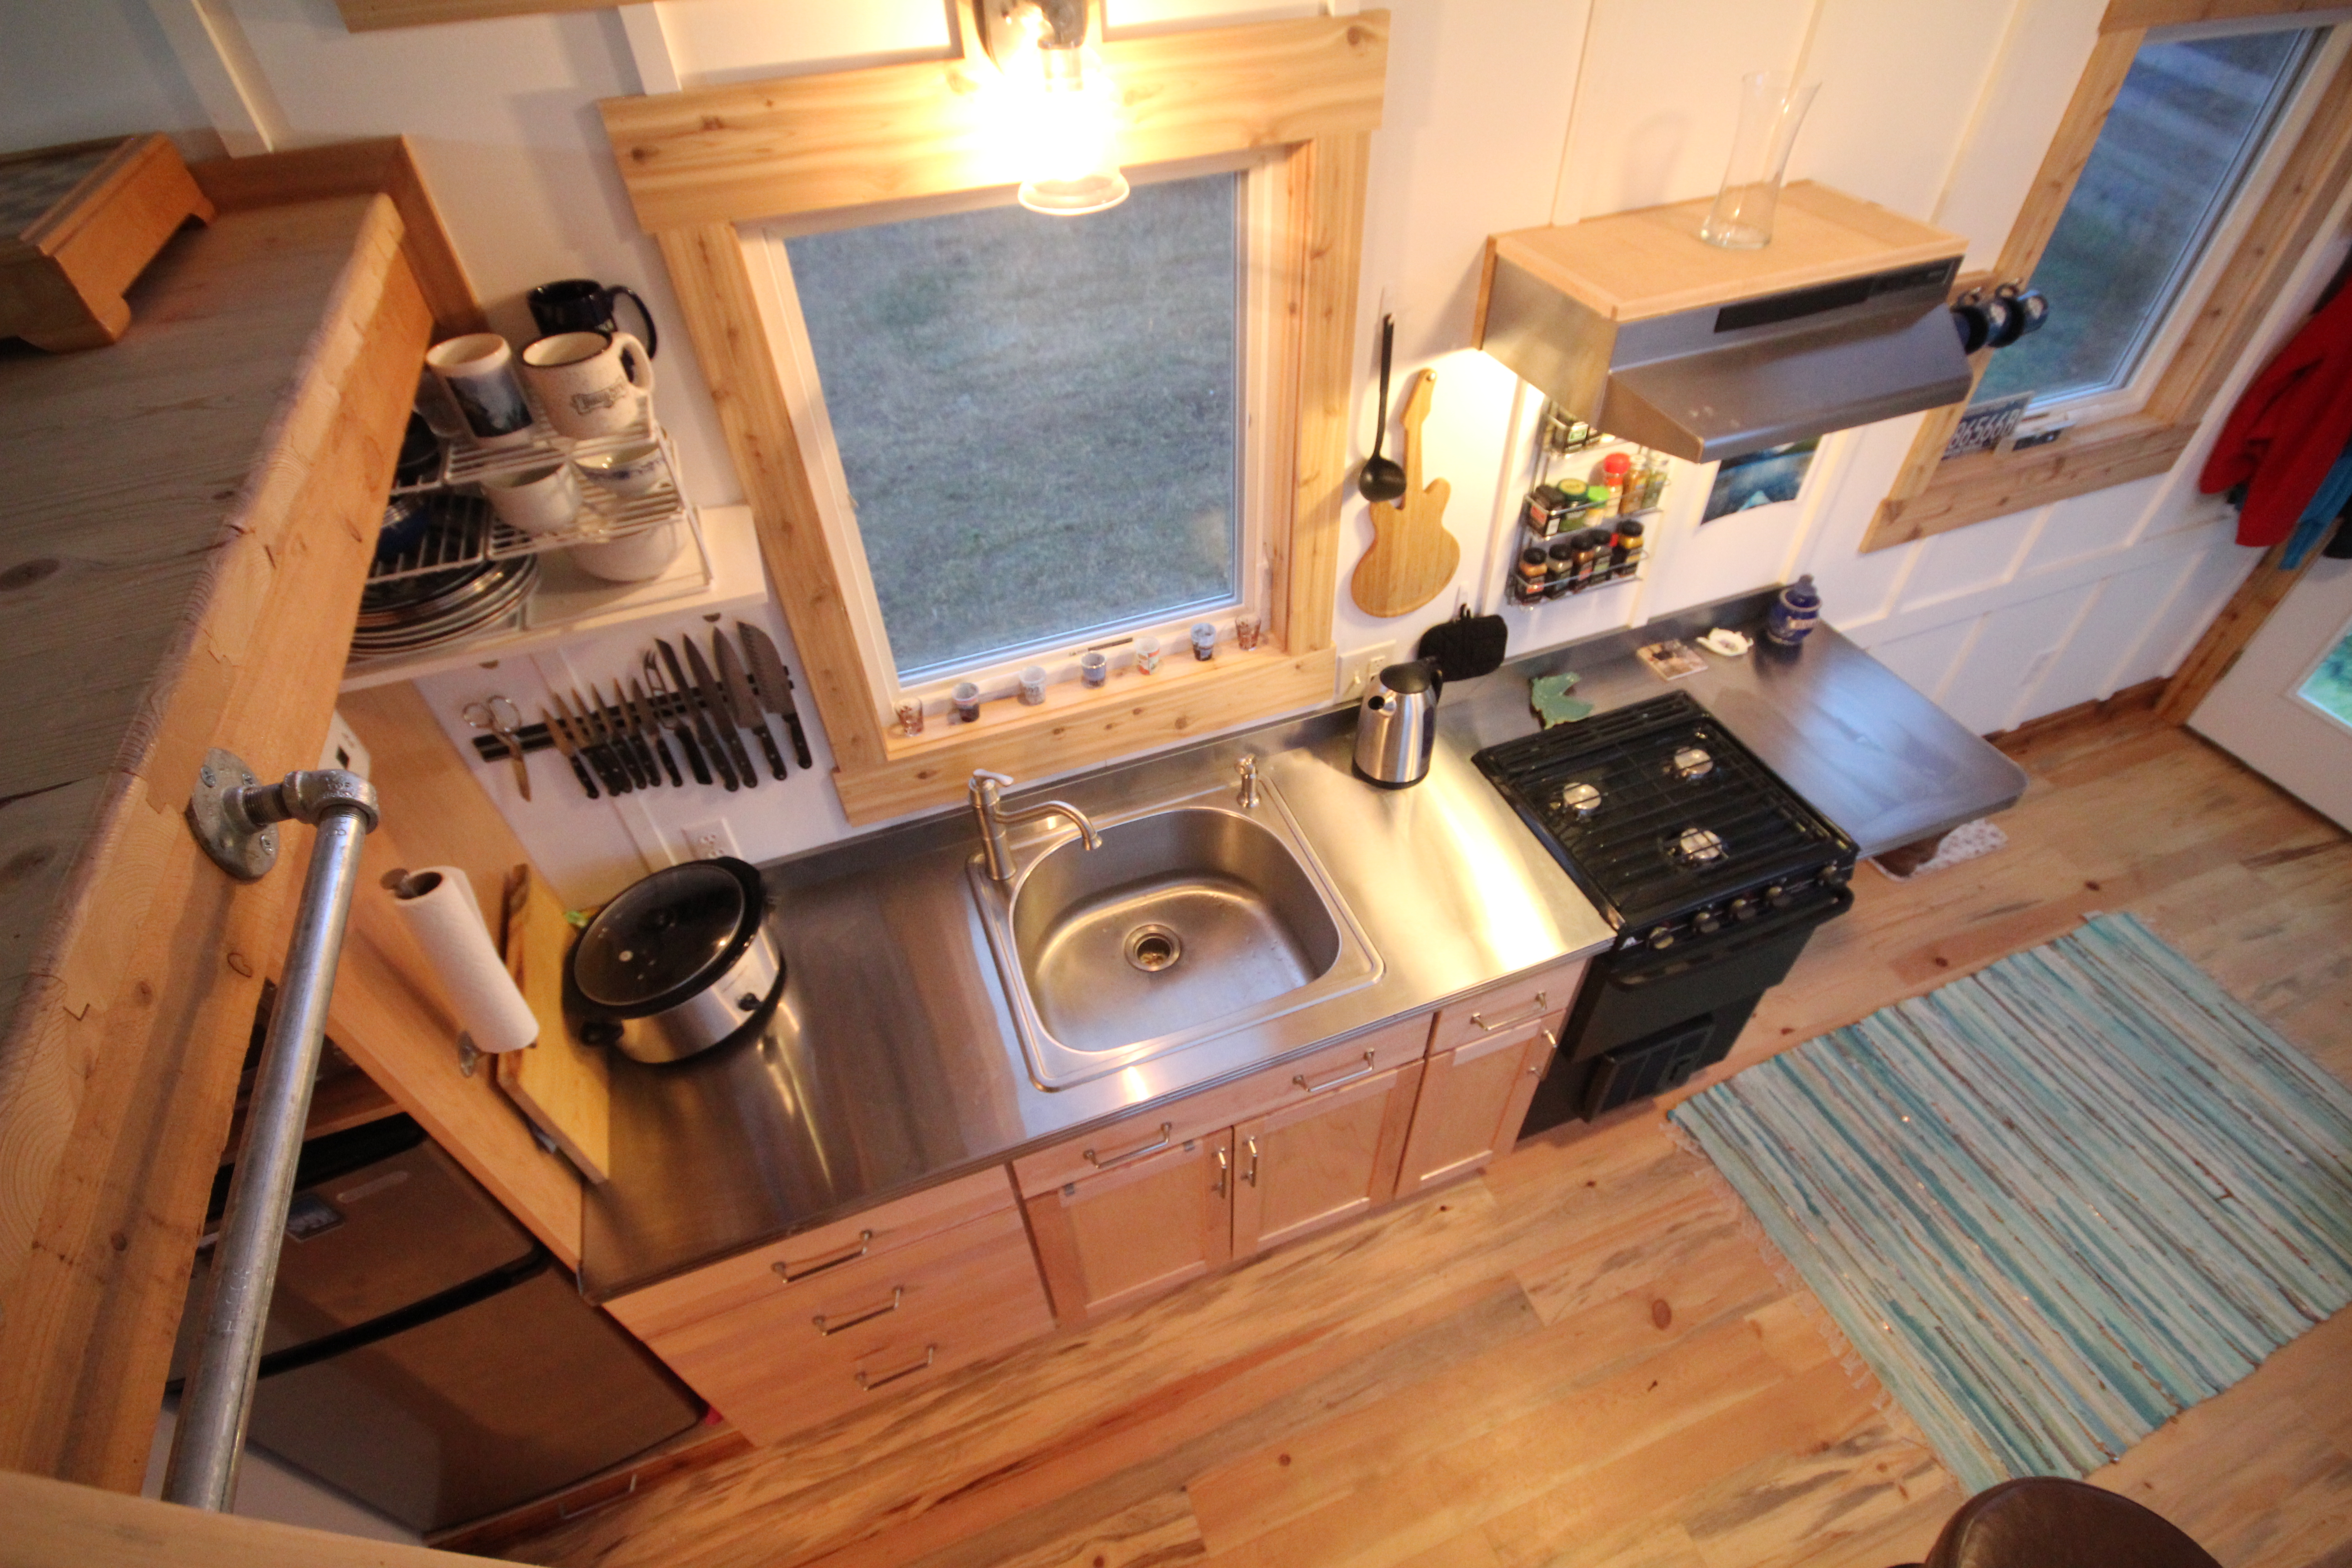 SMALL BUT FUNCTIONAL GALLEY KITCHEN